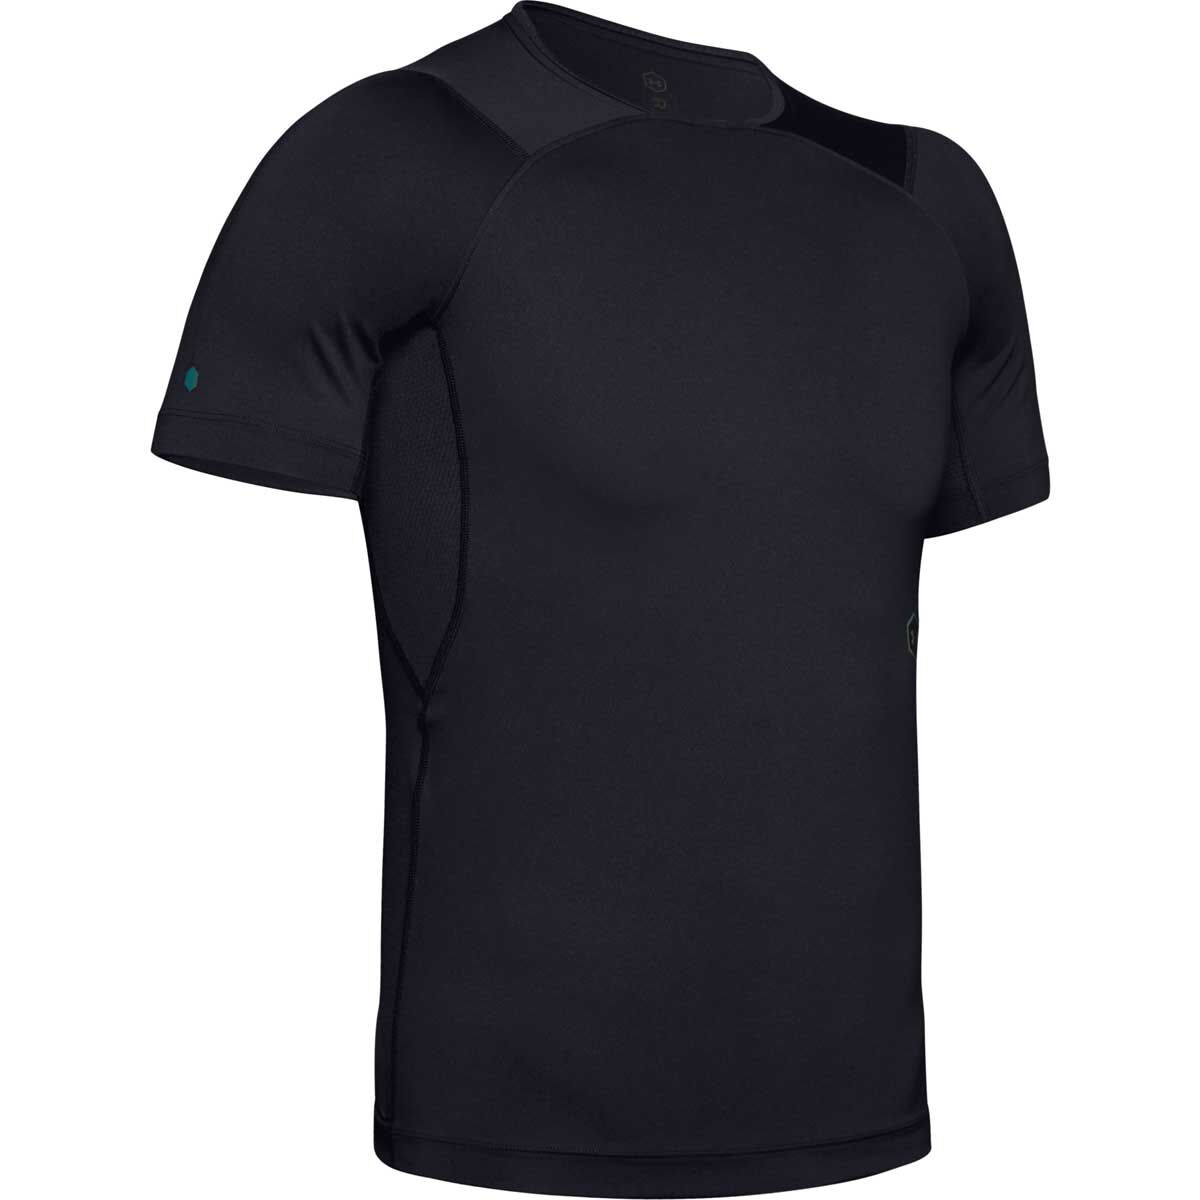 New Mens Compression Shirt Sports Base Layer Short Sleeve Workout Gym AFL Take 5